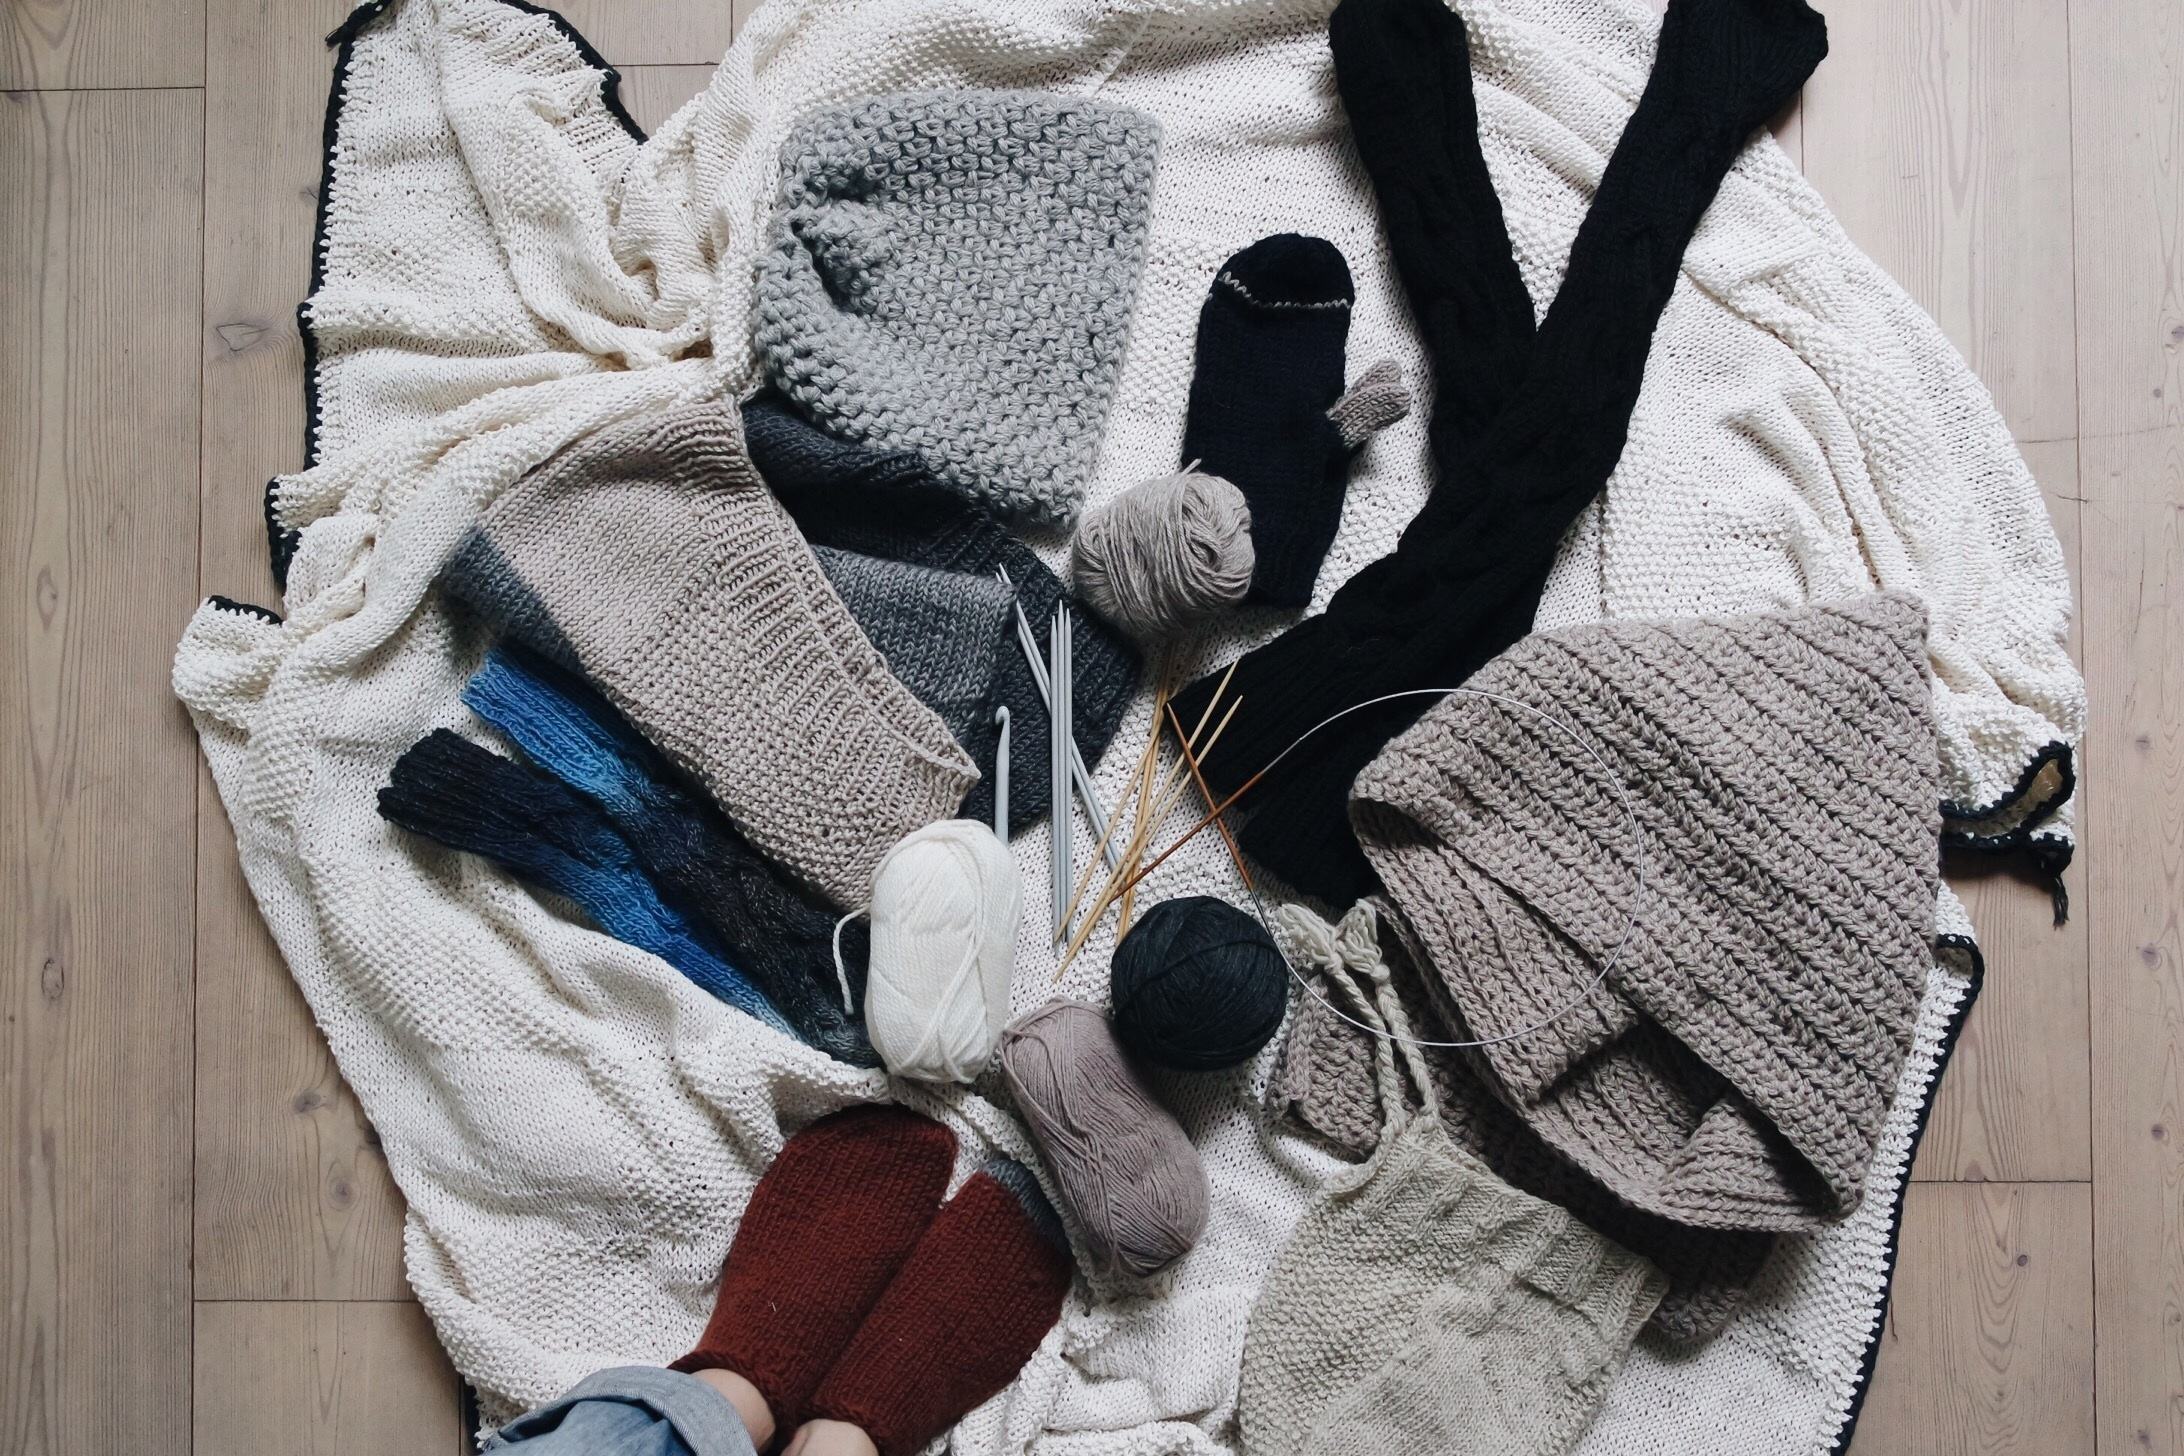 How to stay warm without cranking up the heat